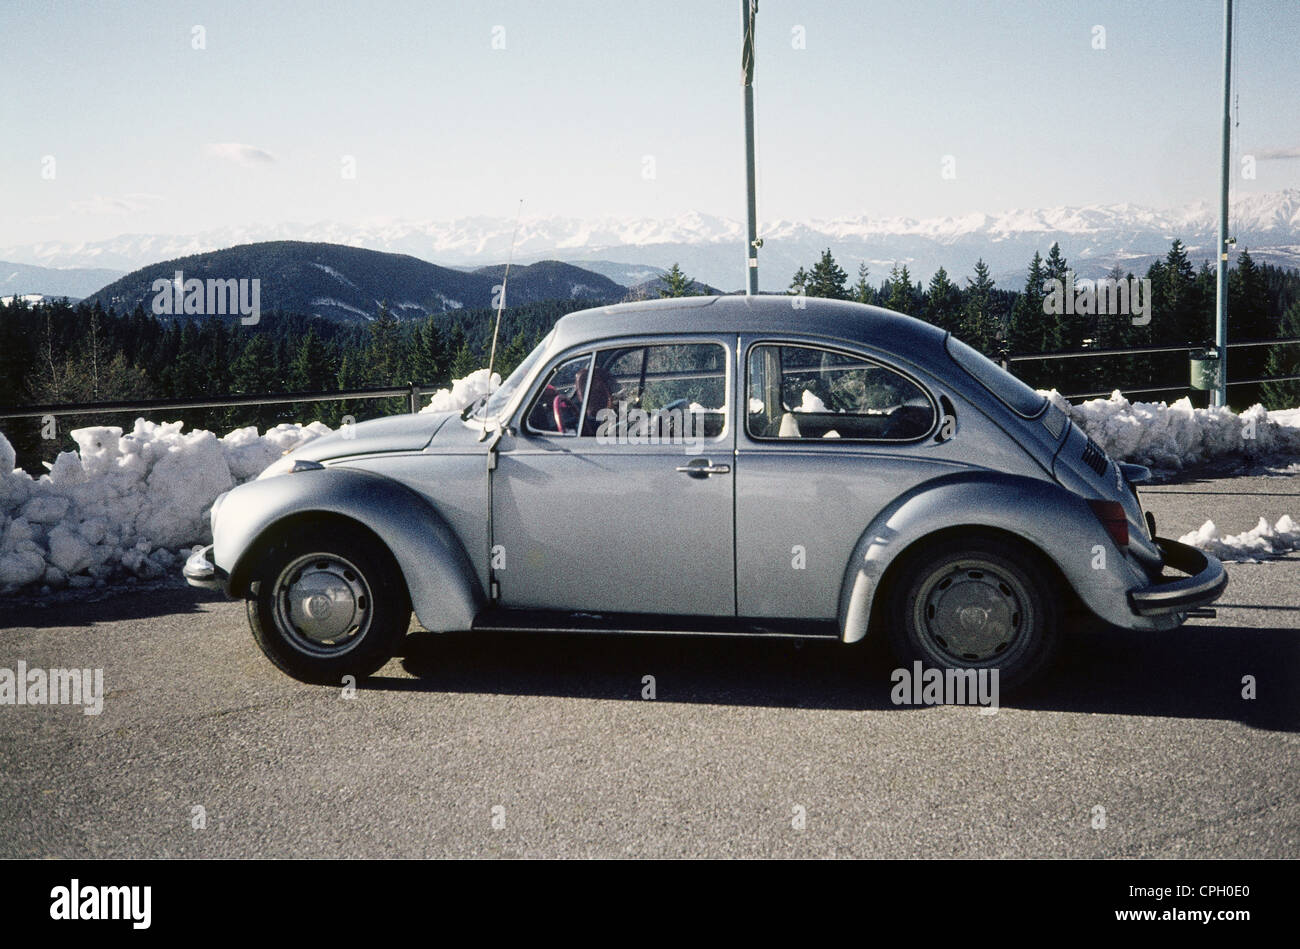 transport / transportation, car, vehicle variants, Volkswagen, VW Beetle, silver version on parking space at Nigerstrasse, - Stock Image